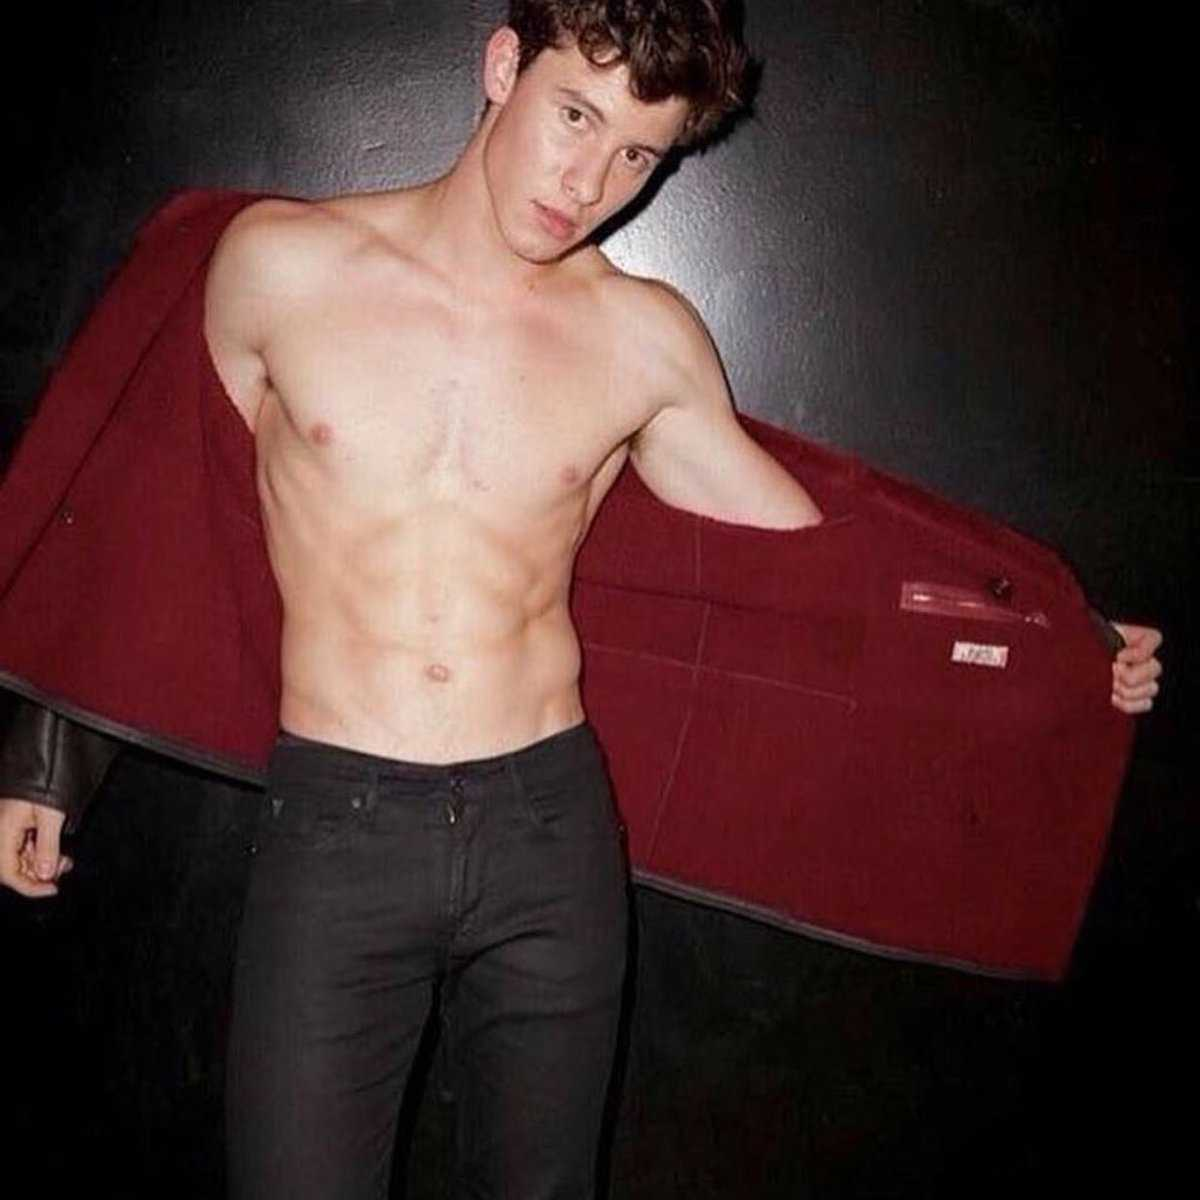 shawn mendes outtake